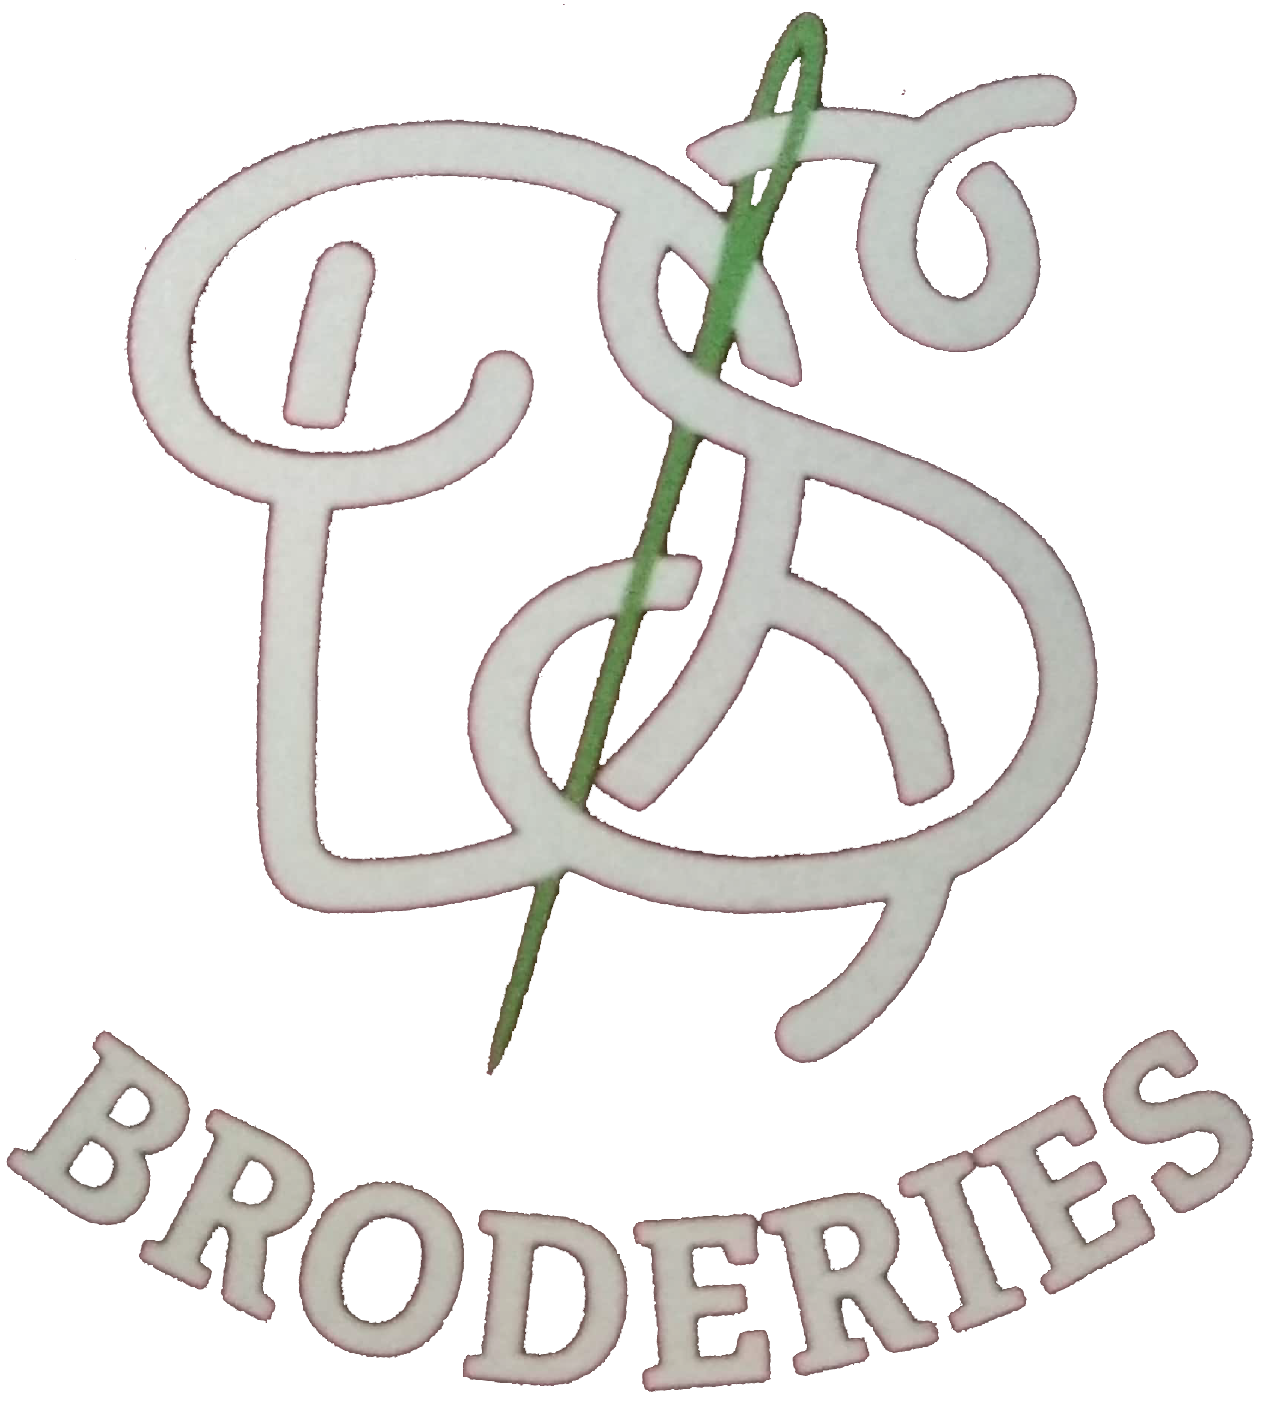 ds-broderies-logo